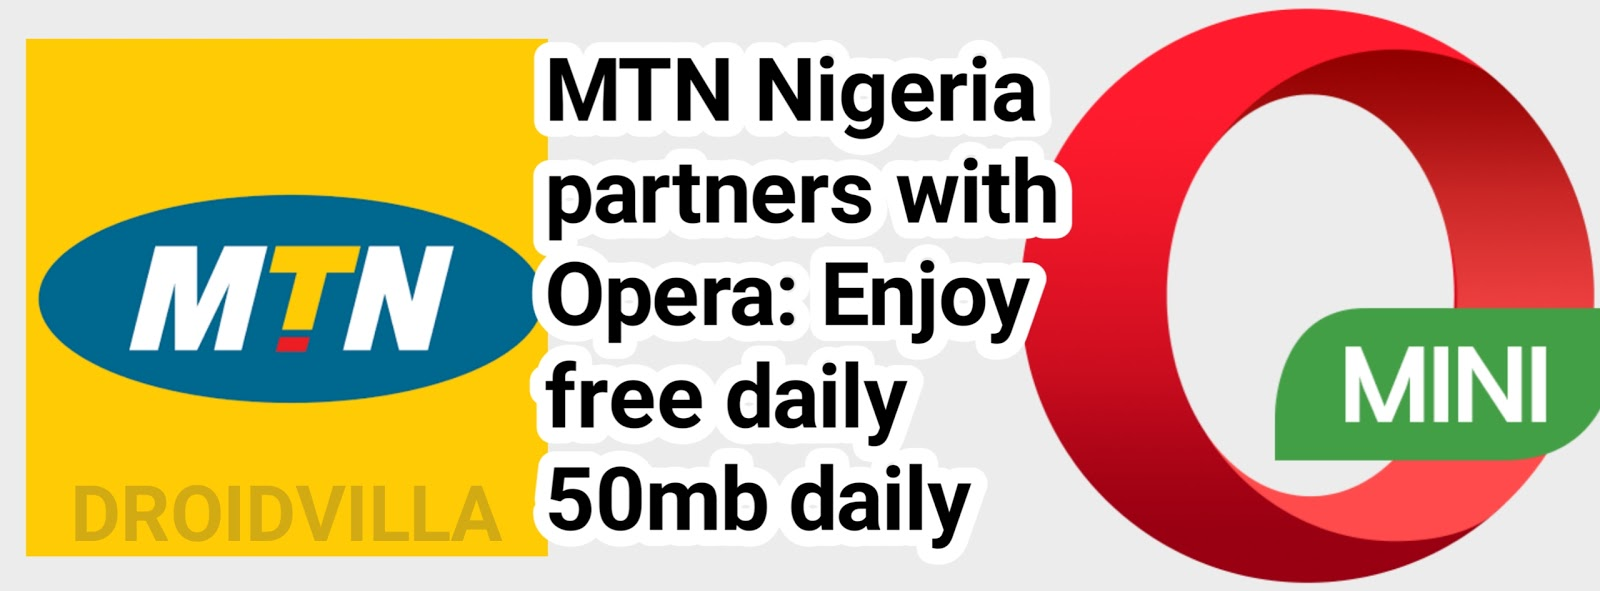 MTN Nigeria partners with Opera: Enjoy free daily 50mb daily